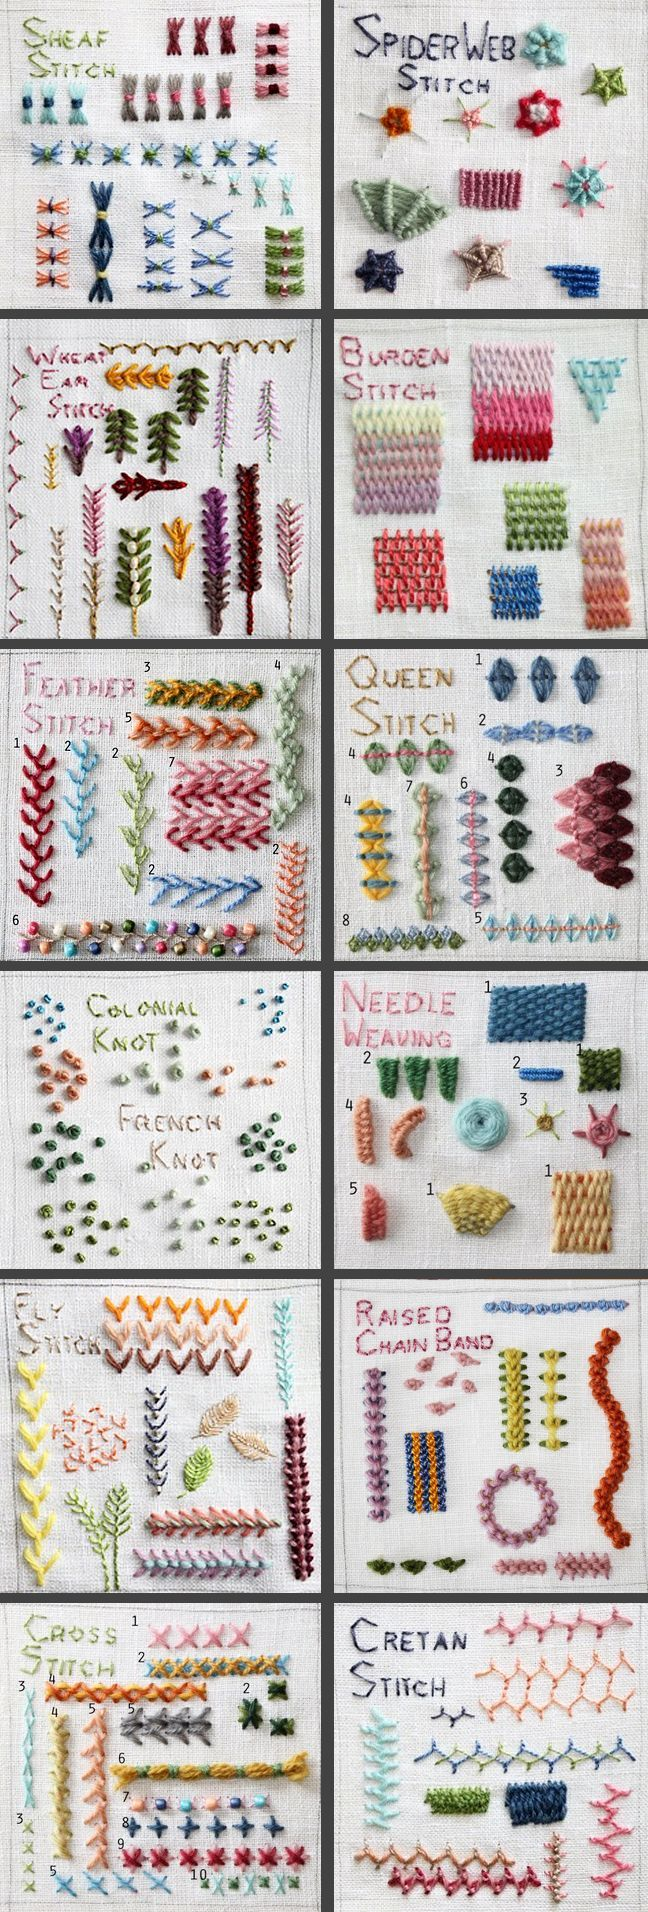 Embroidery Stitches Galore + Imaginative Applications / ECI